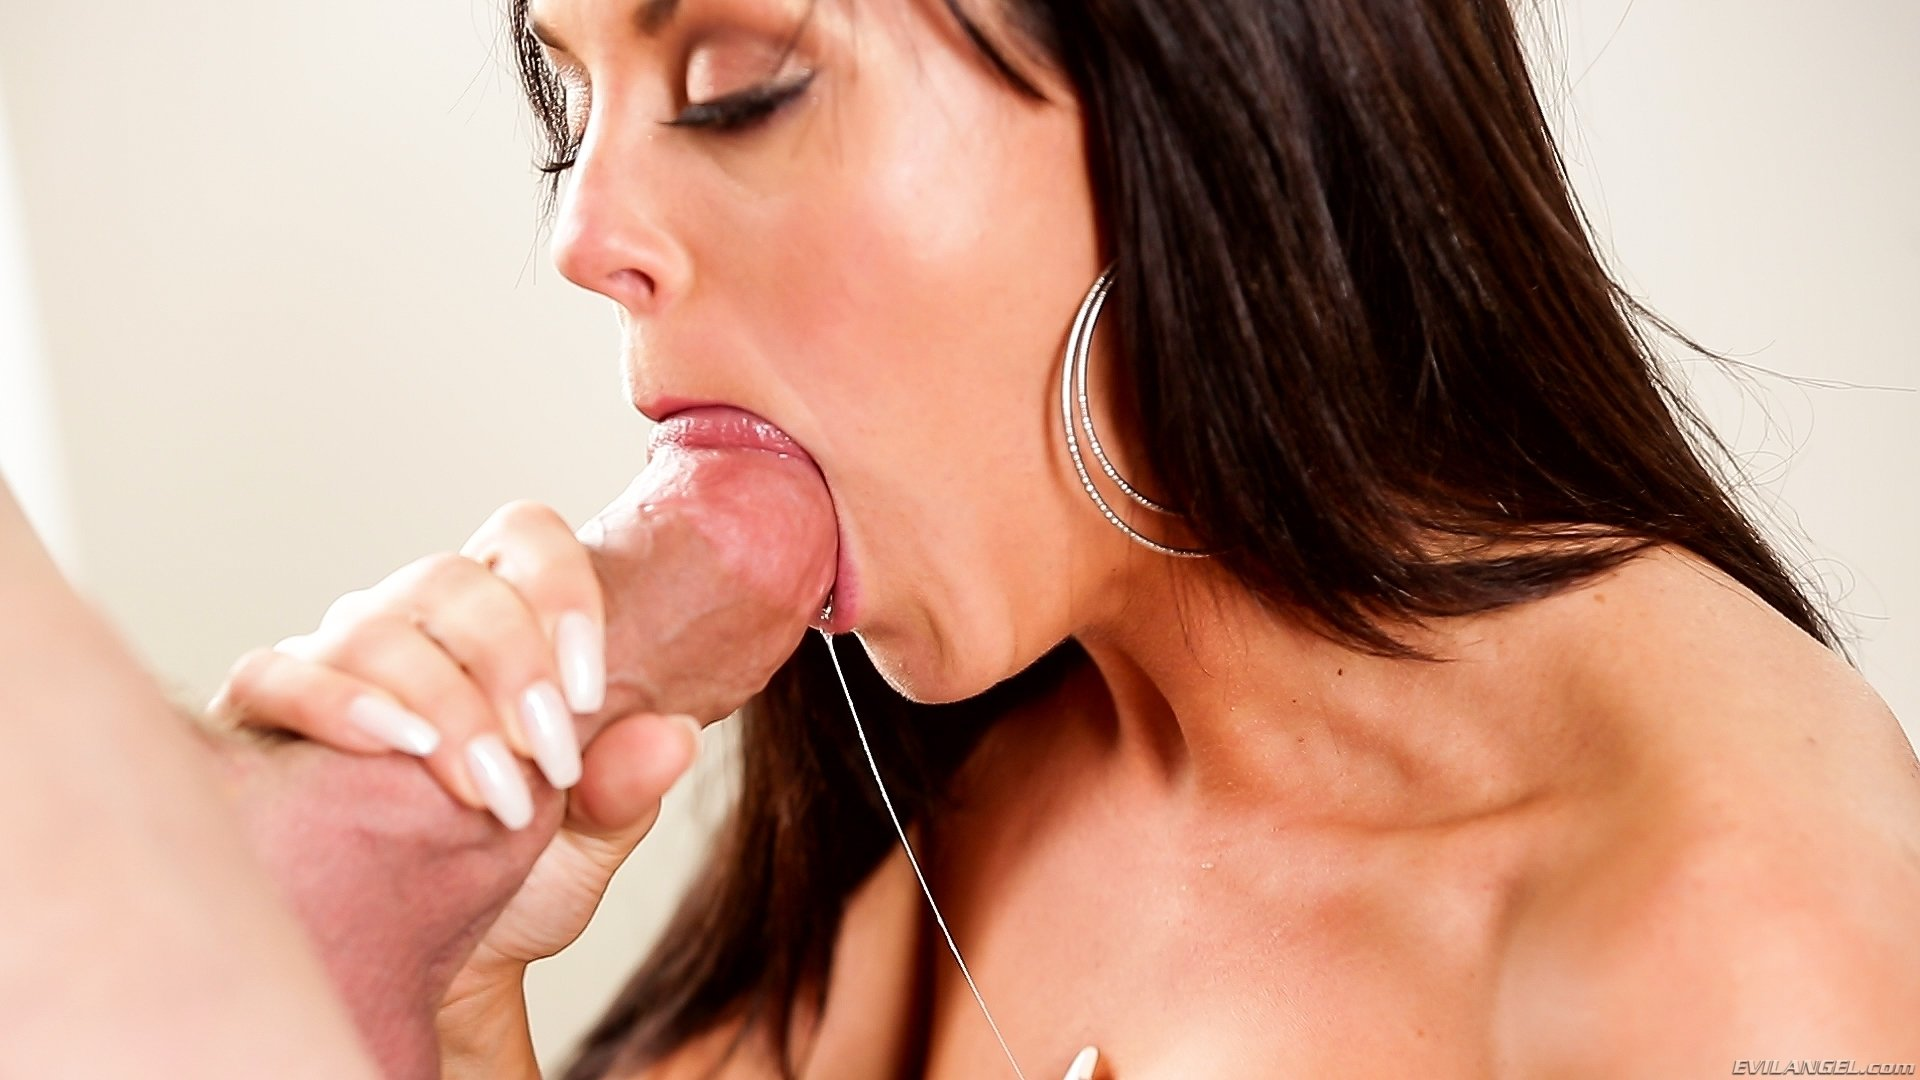 Fucking hd oral sex young